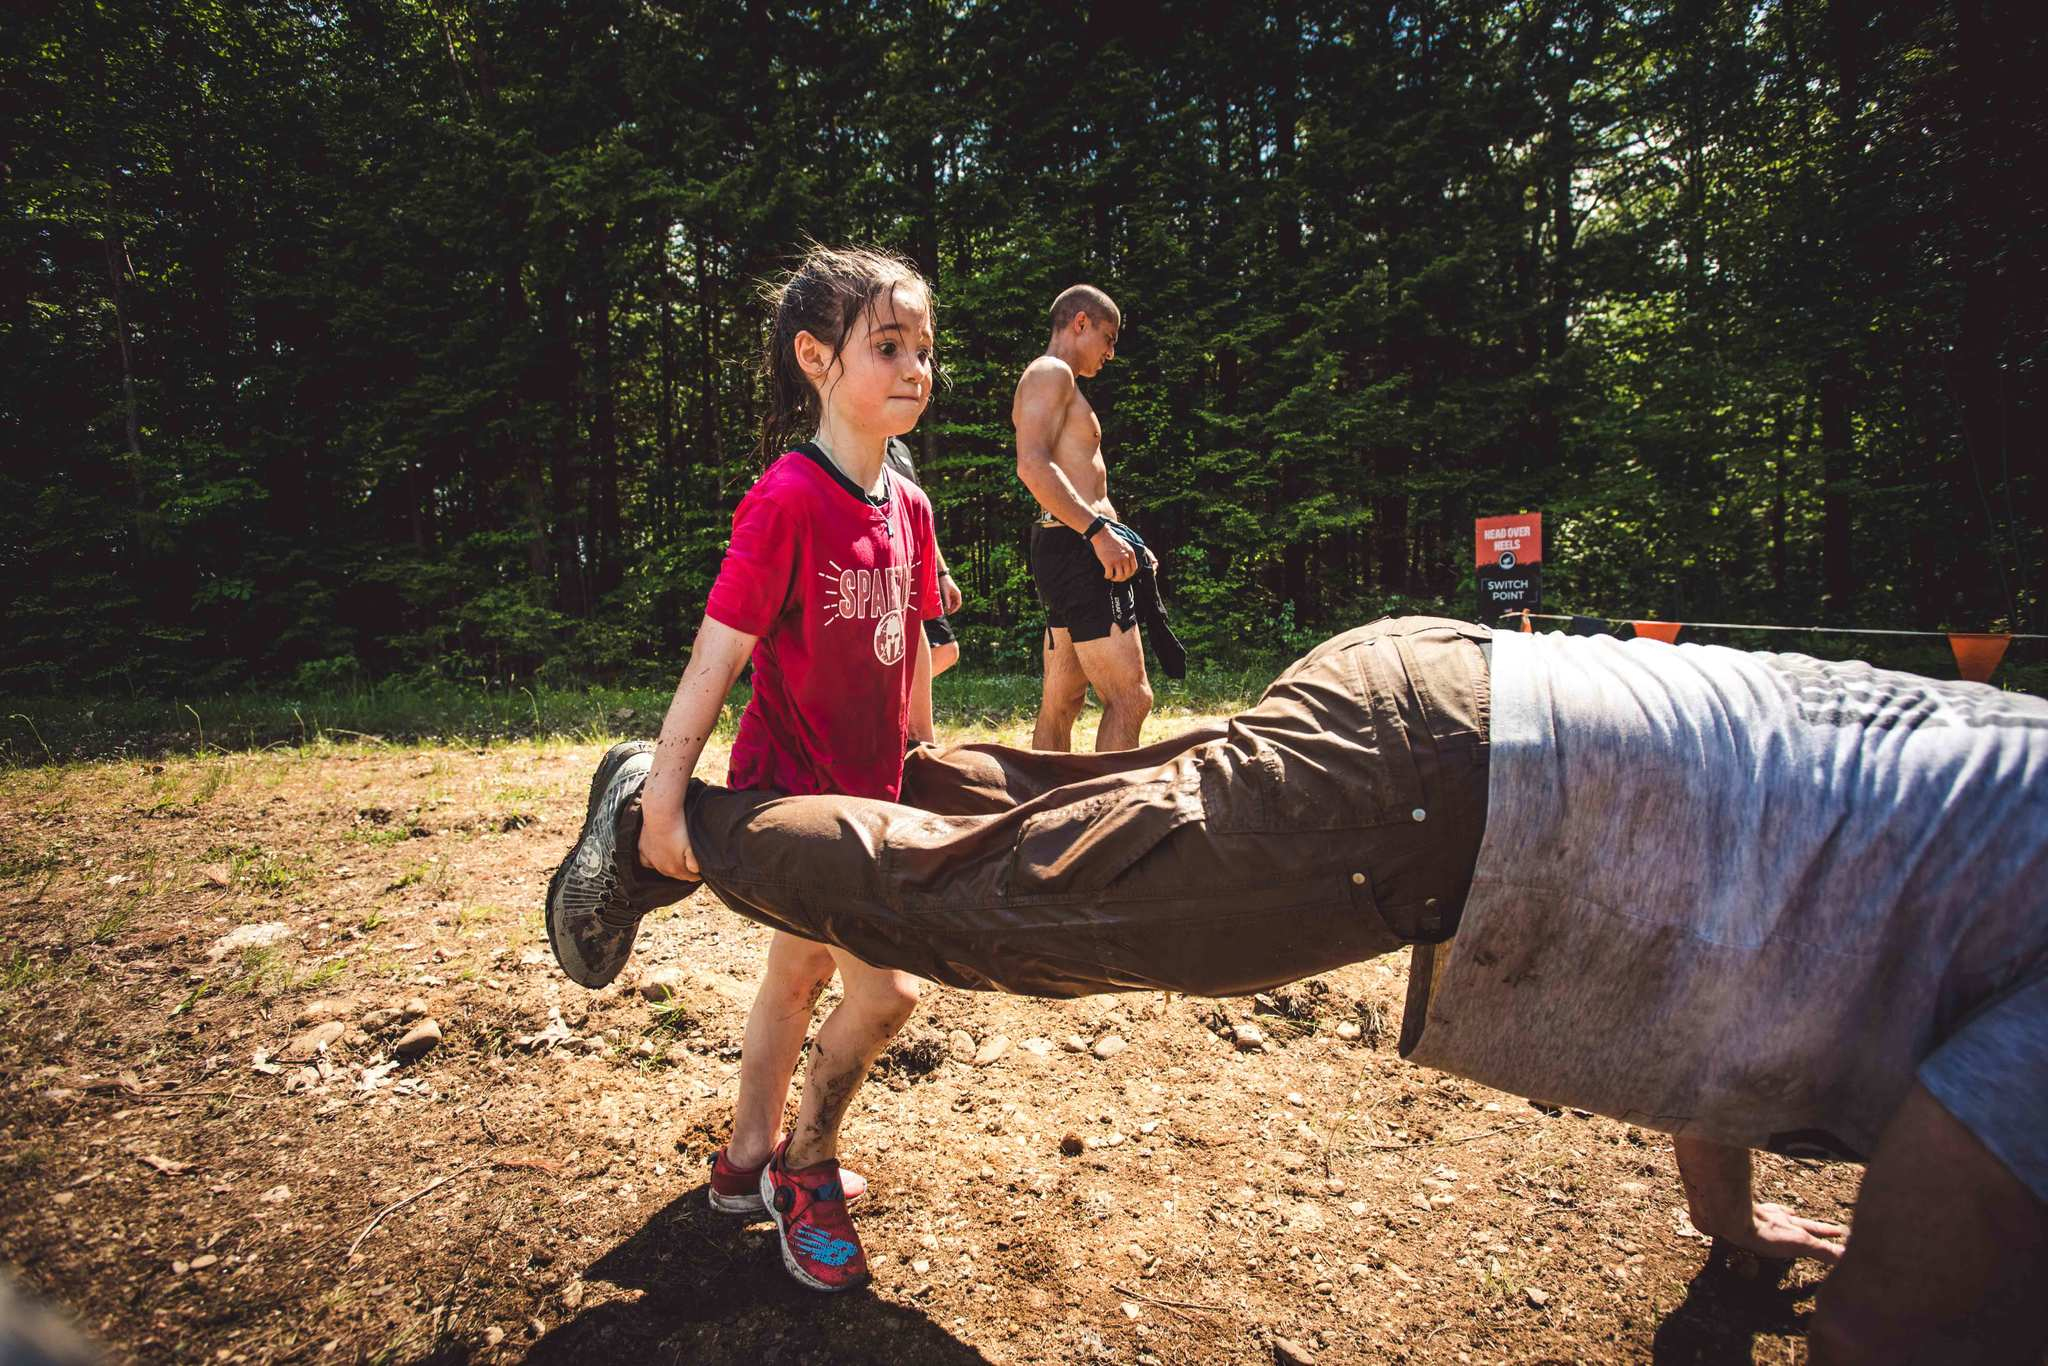 One of the five toughest people in the Joe De Sena network, Joe's youngest daughter Alex, completes a race while holding Joe's feet.